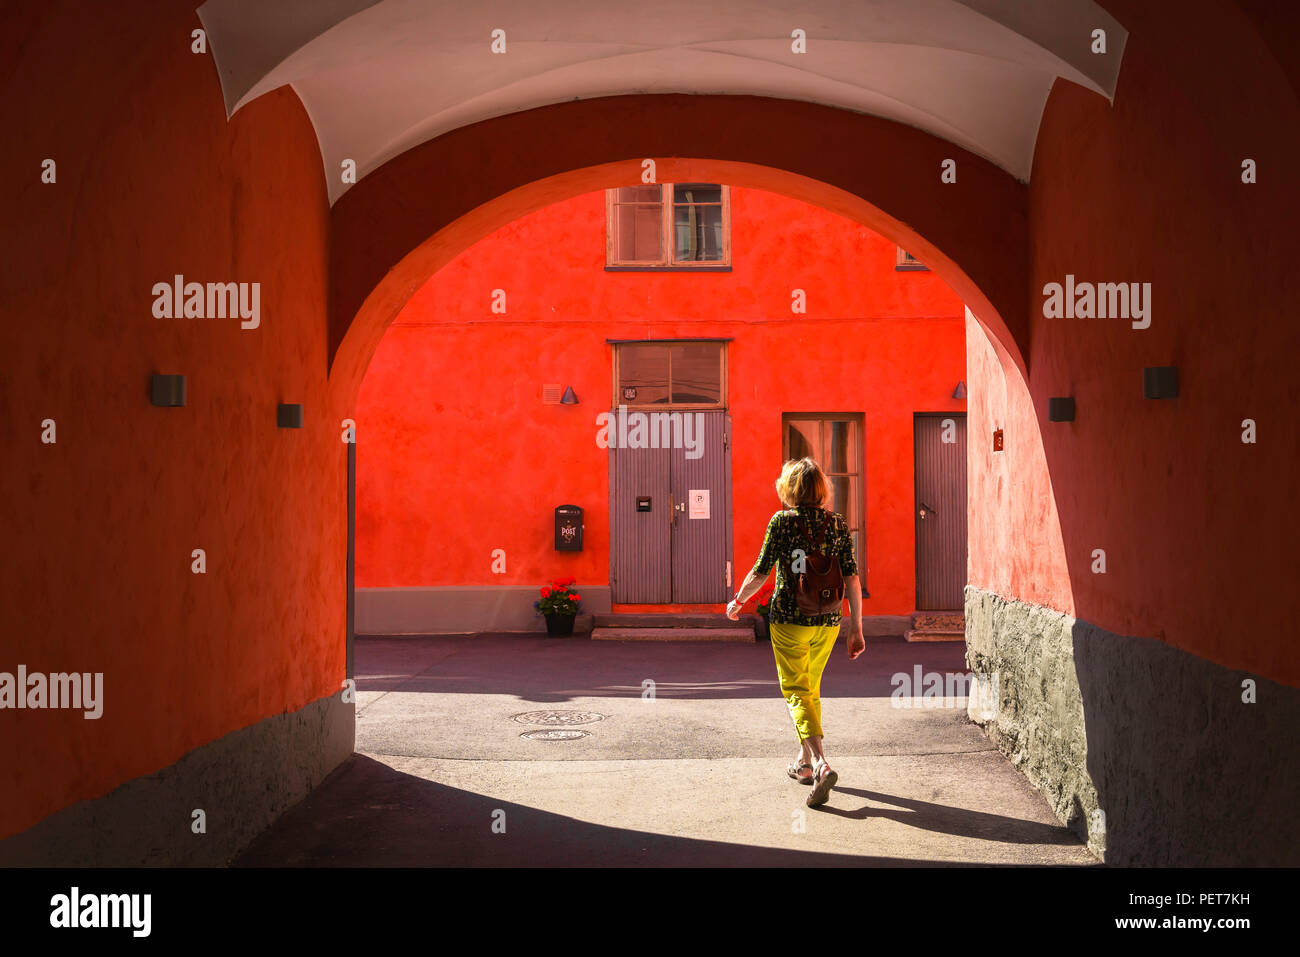 Woman solo travel, rear view of a middle aged female traveller walking alone through a colorful arcade in the old town quarter of Helsinski, Finland. Stock Photo